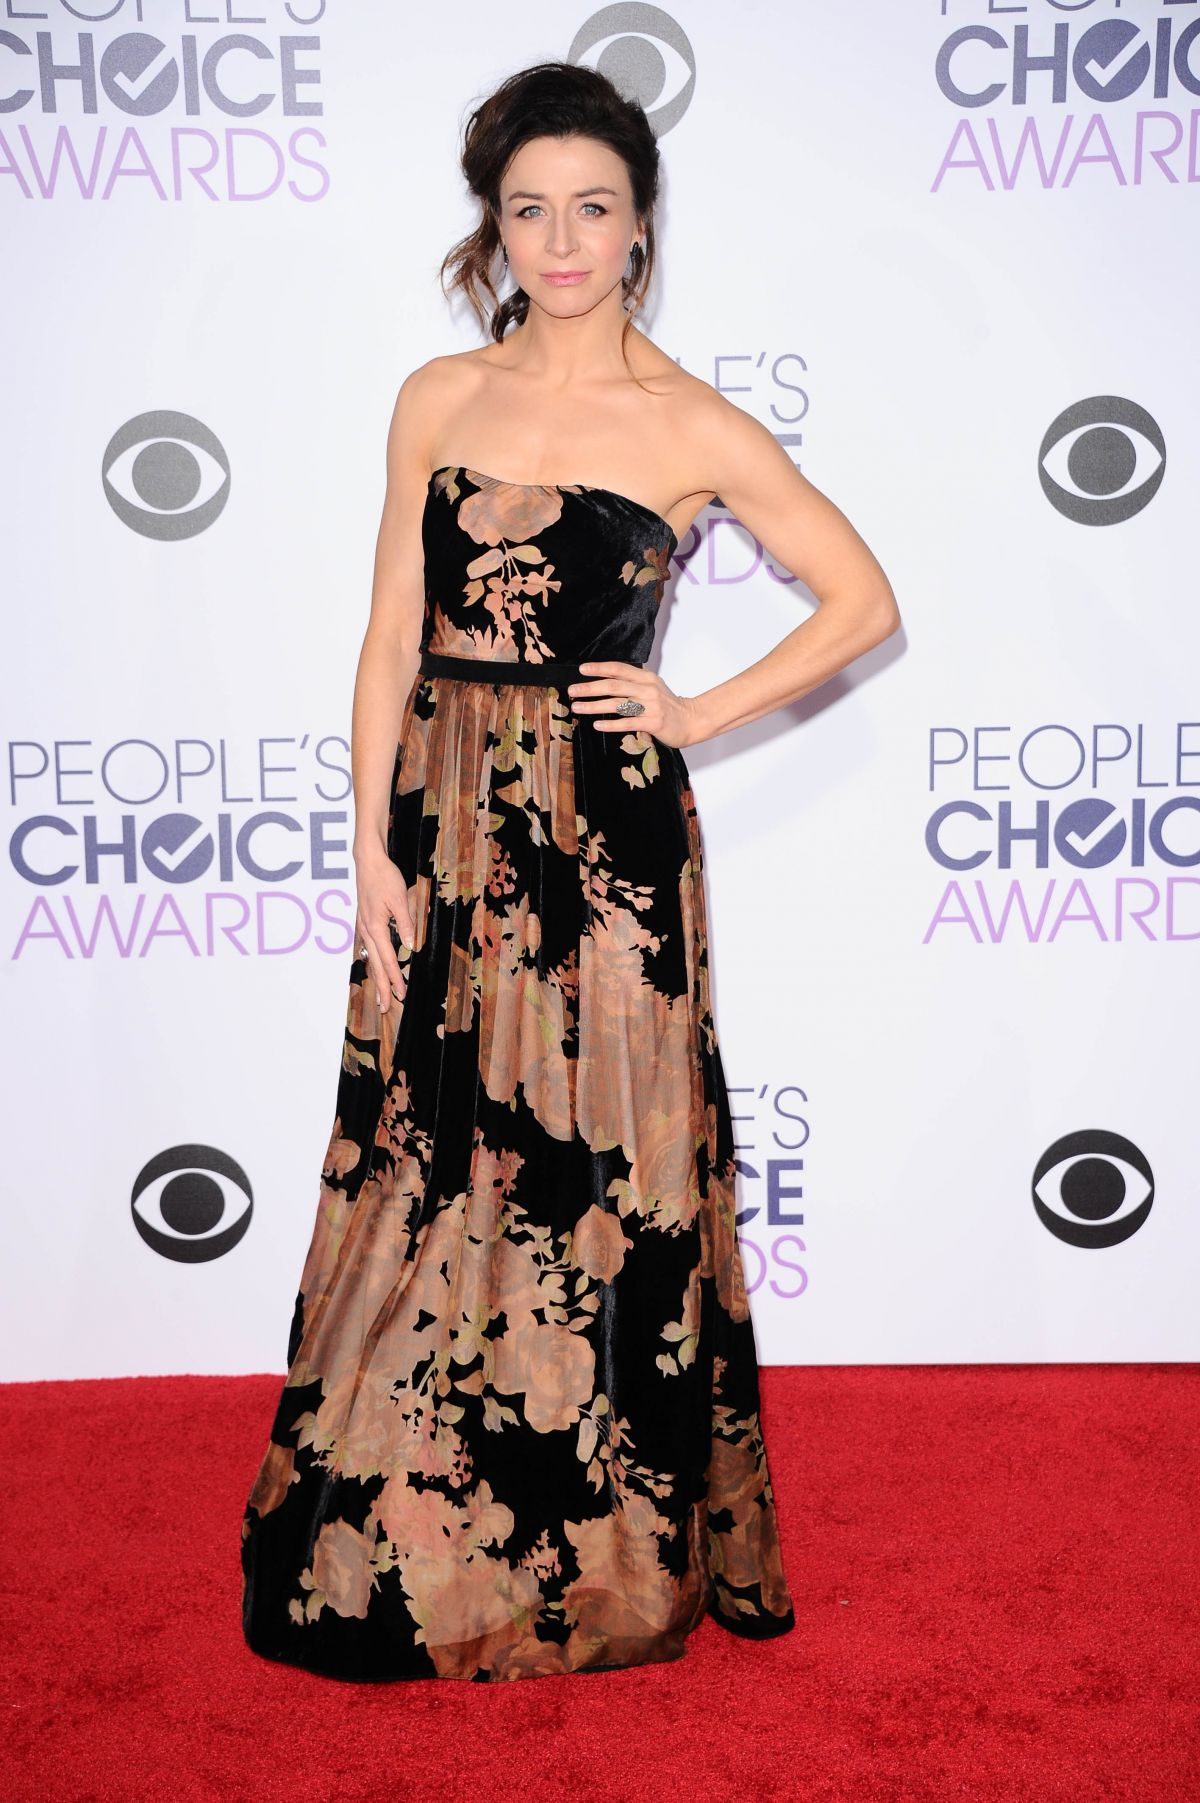 CATERINA SCORSONE at 2016 People's Choice Awards in Los Angeles 01/06/2016